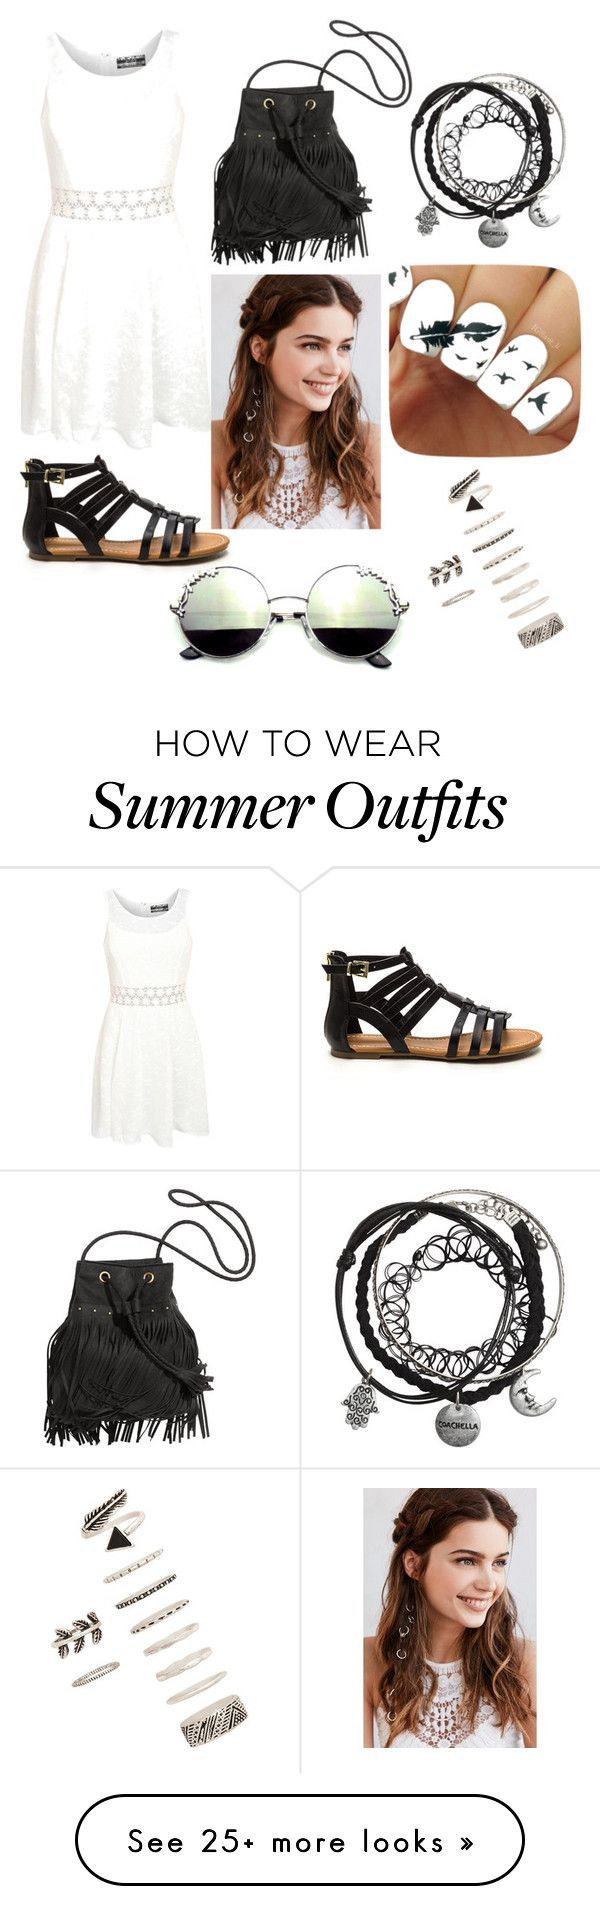 Summer outfit by cayla-dart on Polyvore featuring Pilot, REGALROSE and Forever 21